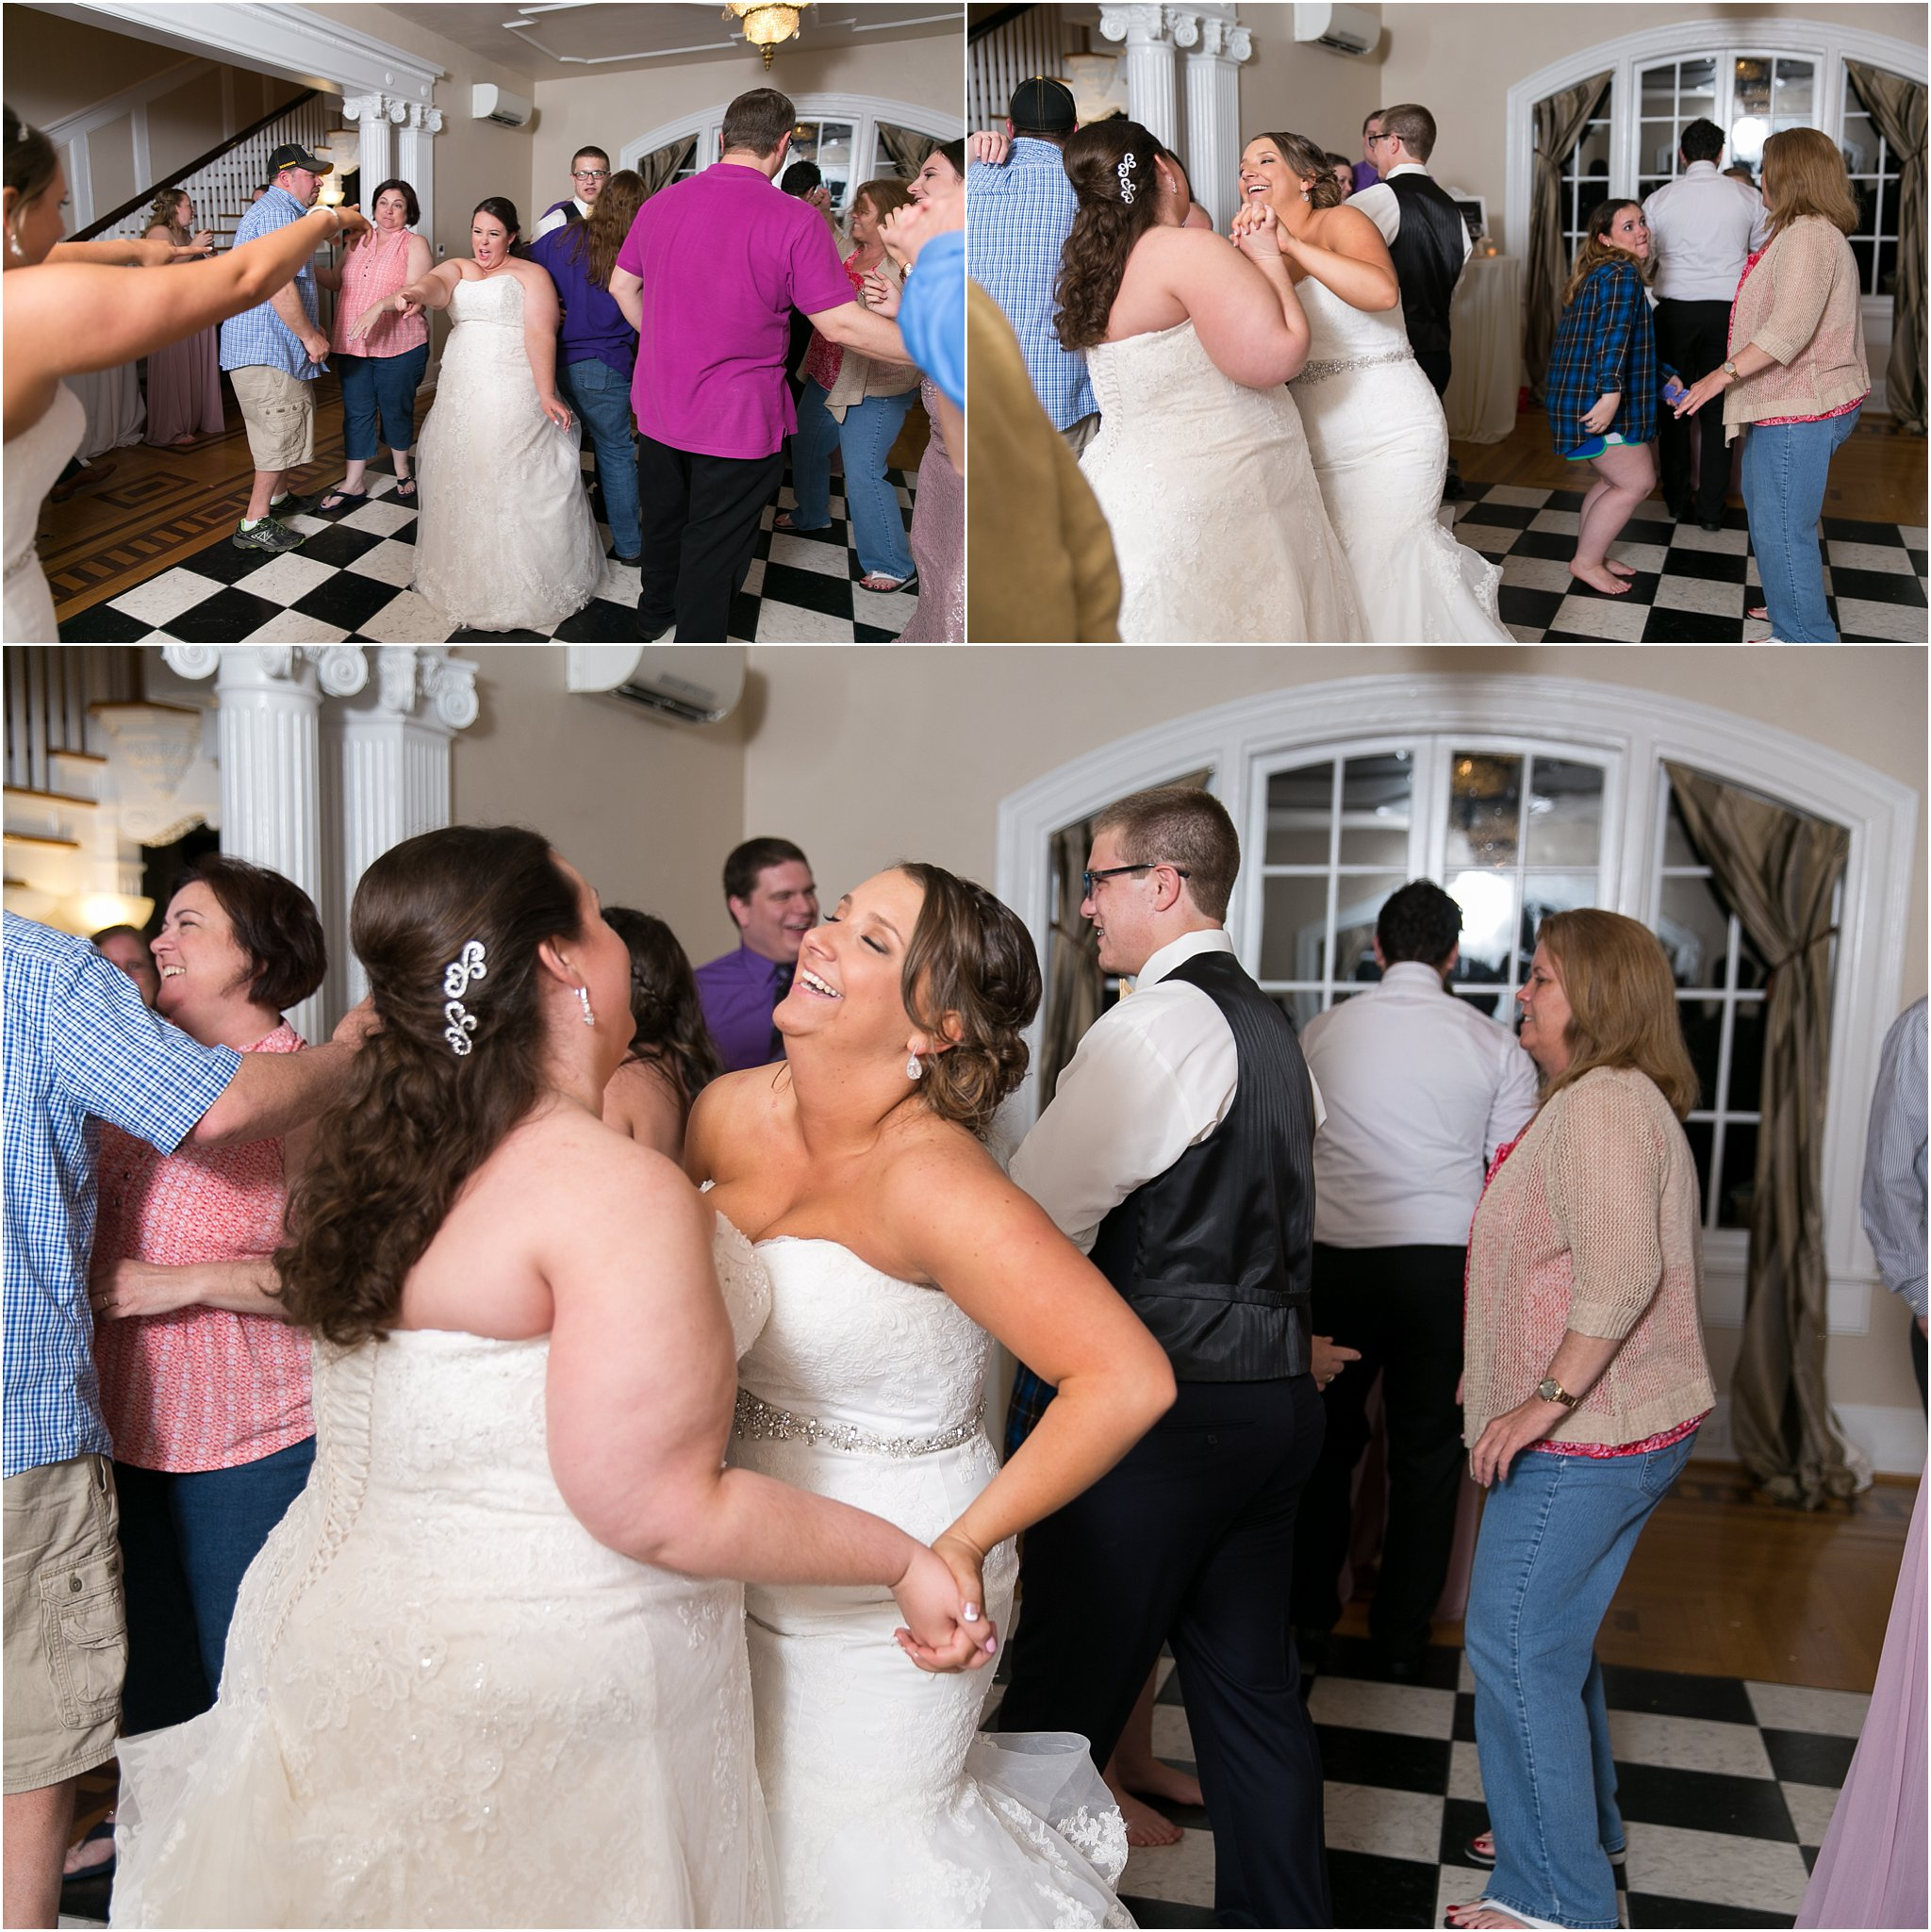 jessica_ryan_photography_wedding_suffolk_obici_house_wedding_0479